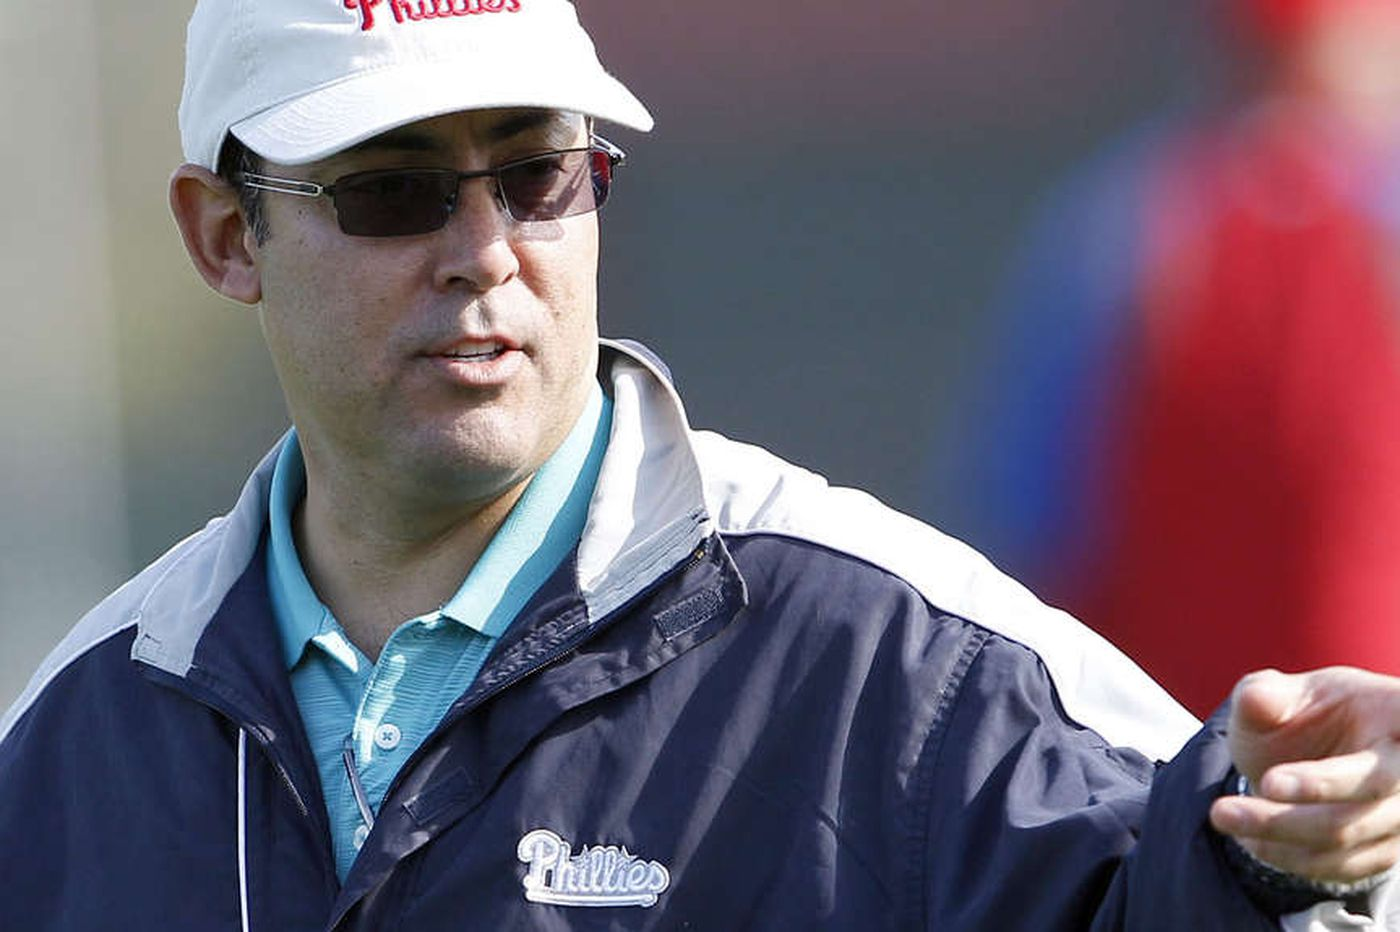 Phillies sources: Former GM Ruben Amaro Jr. taking analyst role with NBC Sports Philadelphia